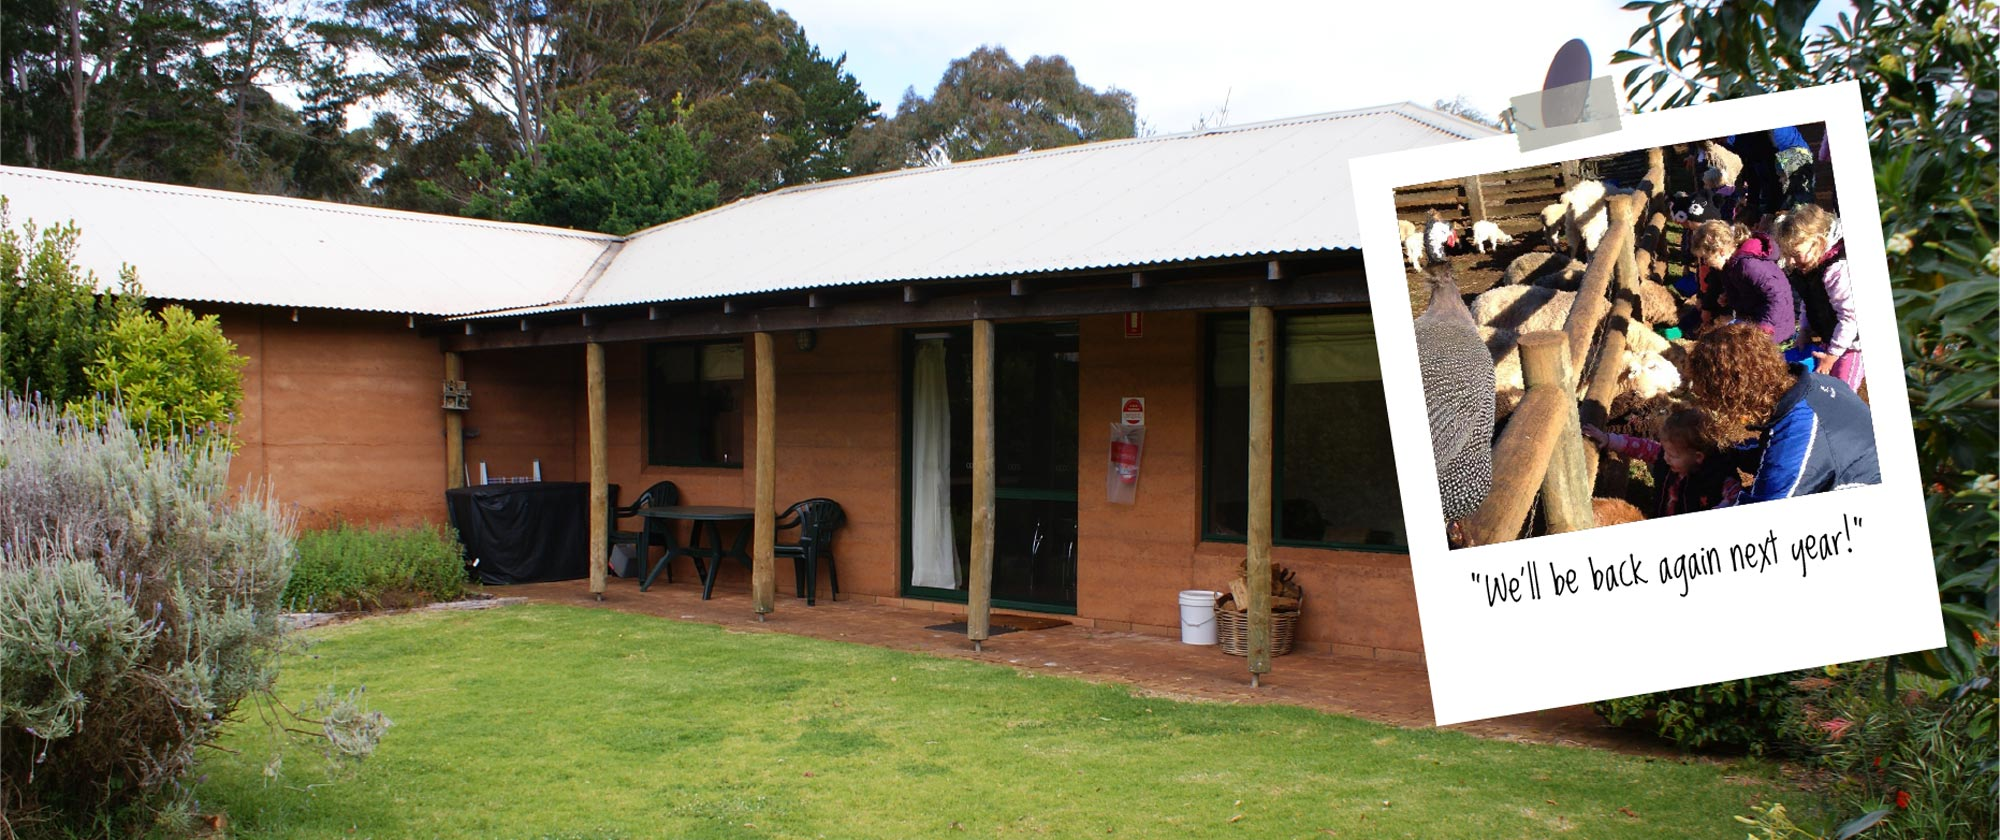 Pemberton Farm Stay Accommodation